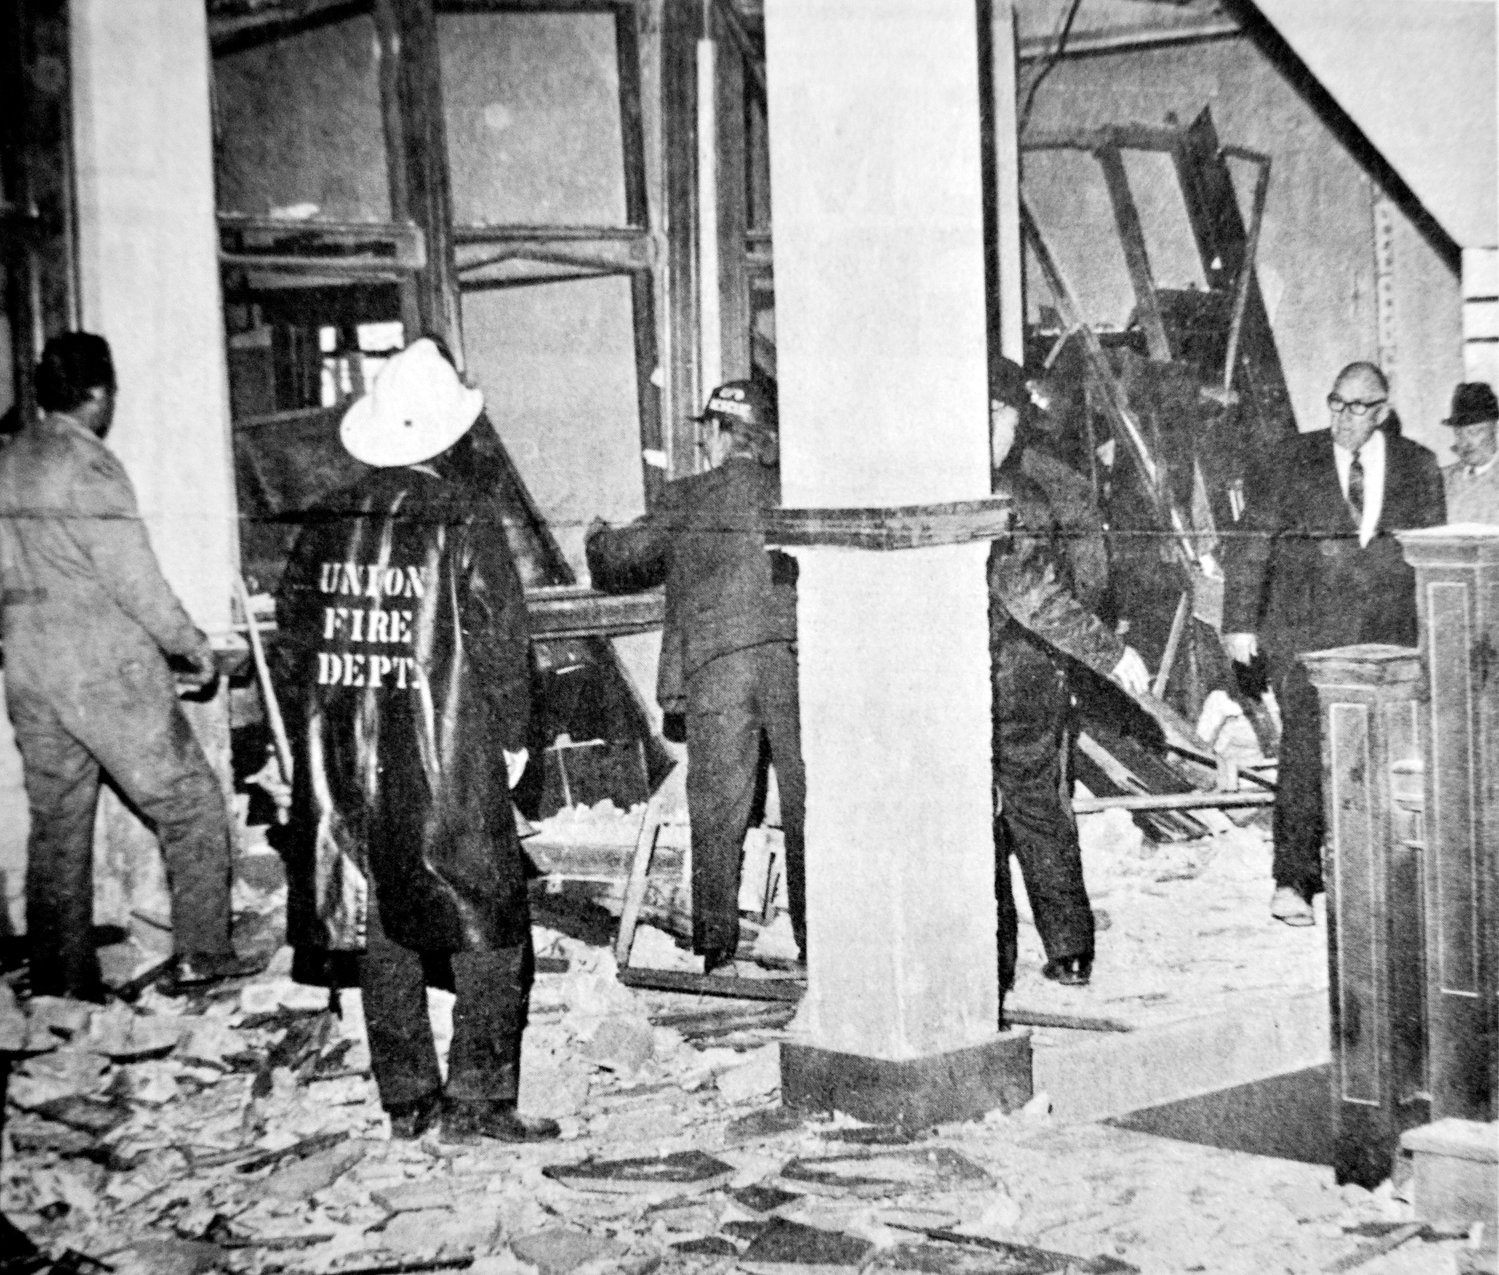 The interior of the courthouse's second story was a shambles after the bomb exploded. Miraculously, no one was killed although seven persons were treated for wounds and several others were cut by glass.